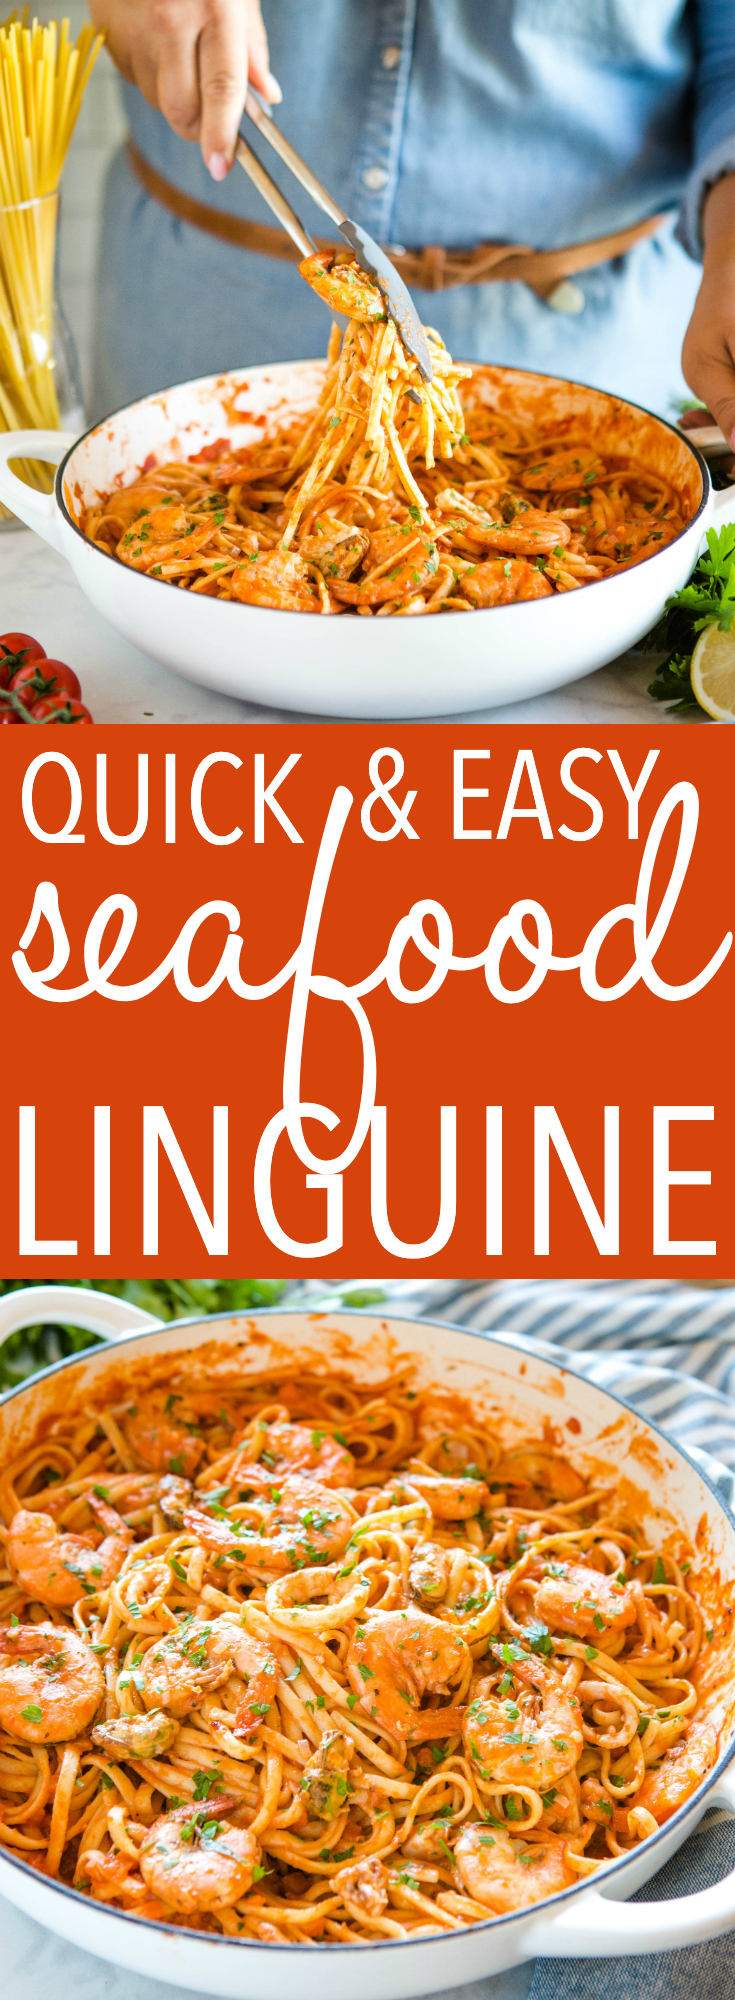 This Quick and Easy Seafood Linguine Marinara is a restaurant-worthy weeknight meal packed with Mediterranean flavour - on the table in 20 minutes or less! Recipe from thebusybaker.ca! #restaurant #weeknightmeal #pasta #seafood #marinara #linguine #simple #easyrecipe #familymeal via @busybakerblog